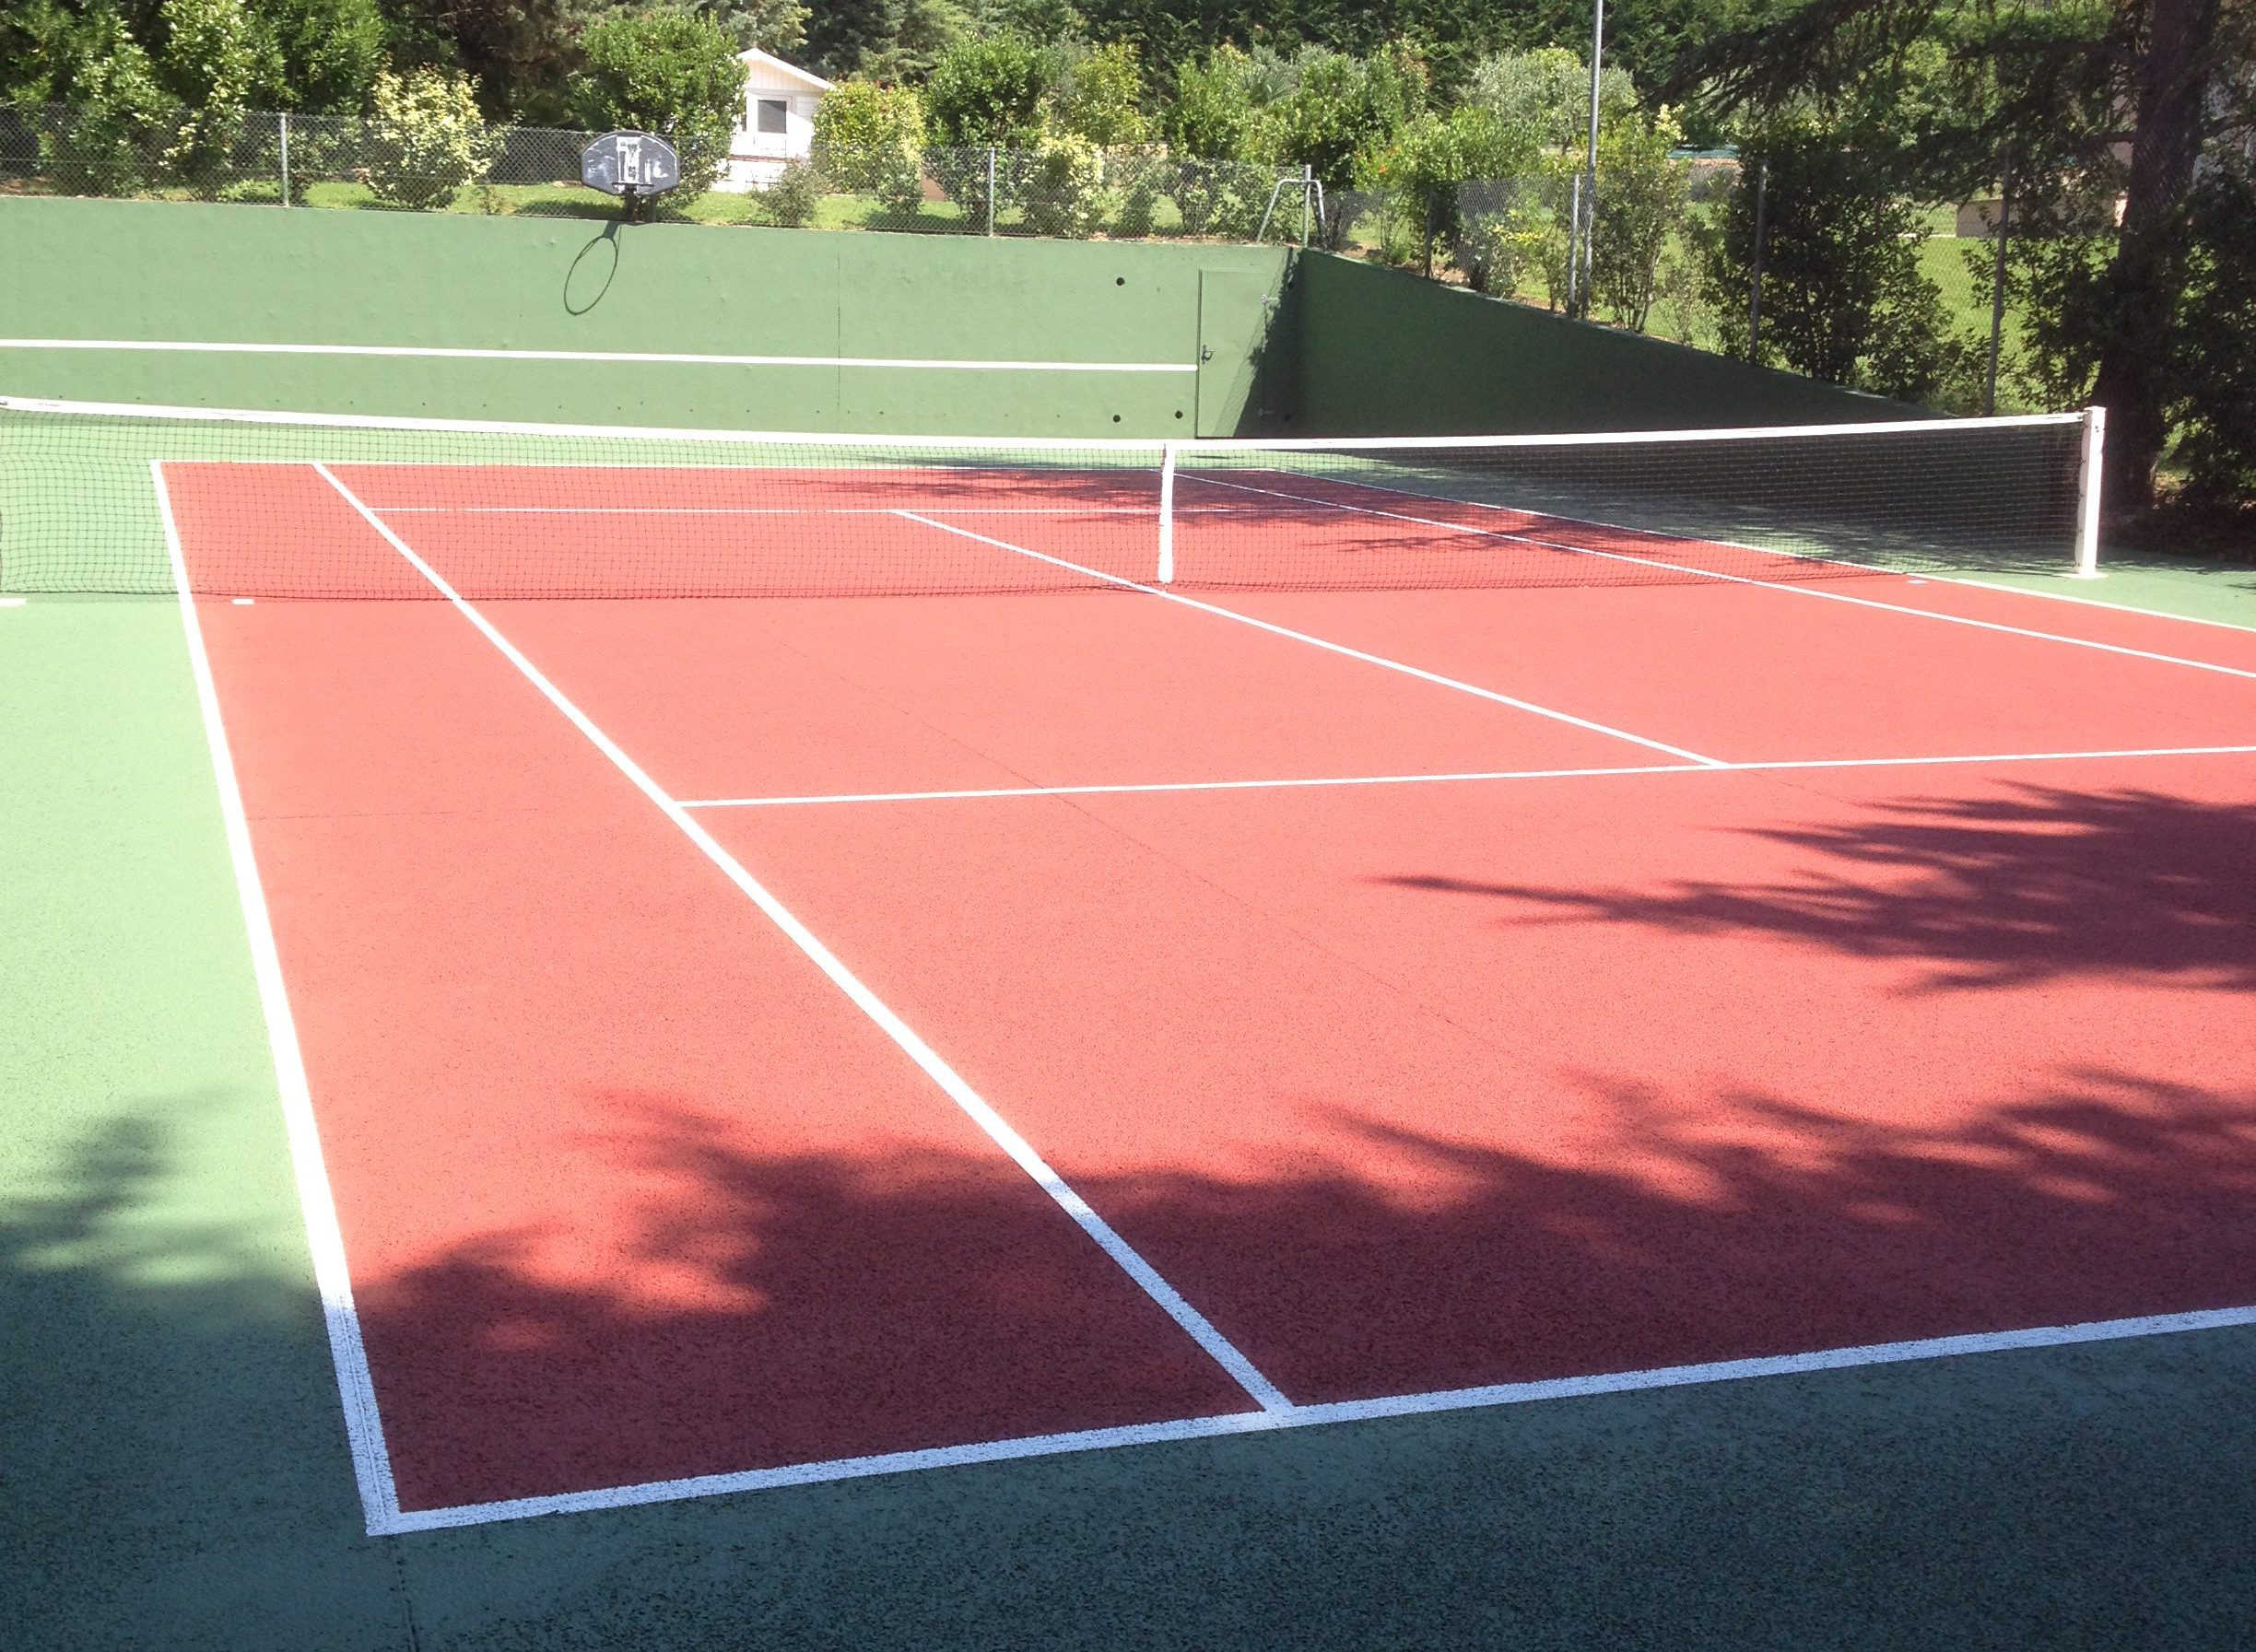 renovation alveolar concrete tennis courtrenovation alveolar concrete tennis court tennis du midi. Black Bedroom Furniture Sets. Home Design Ideas